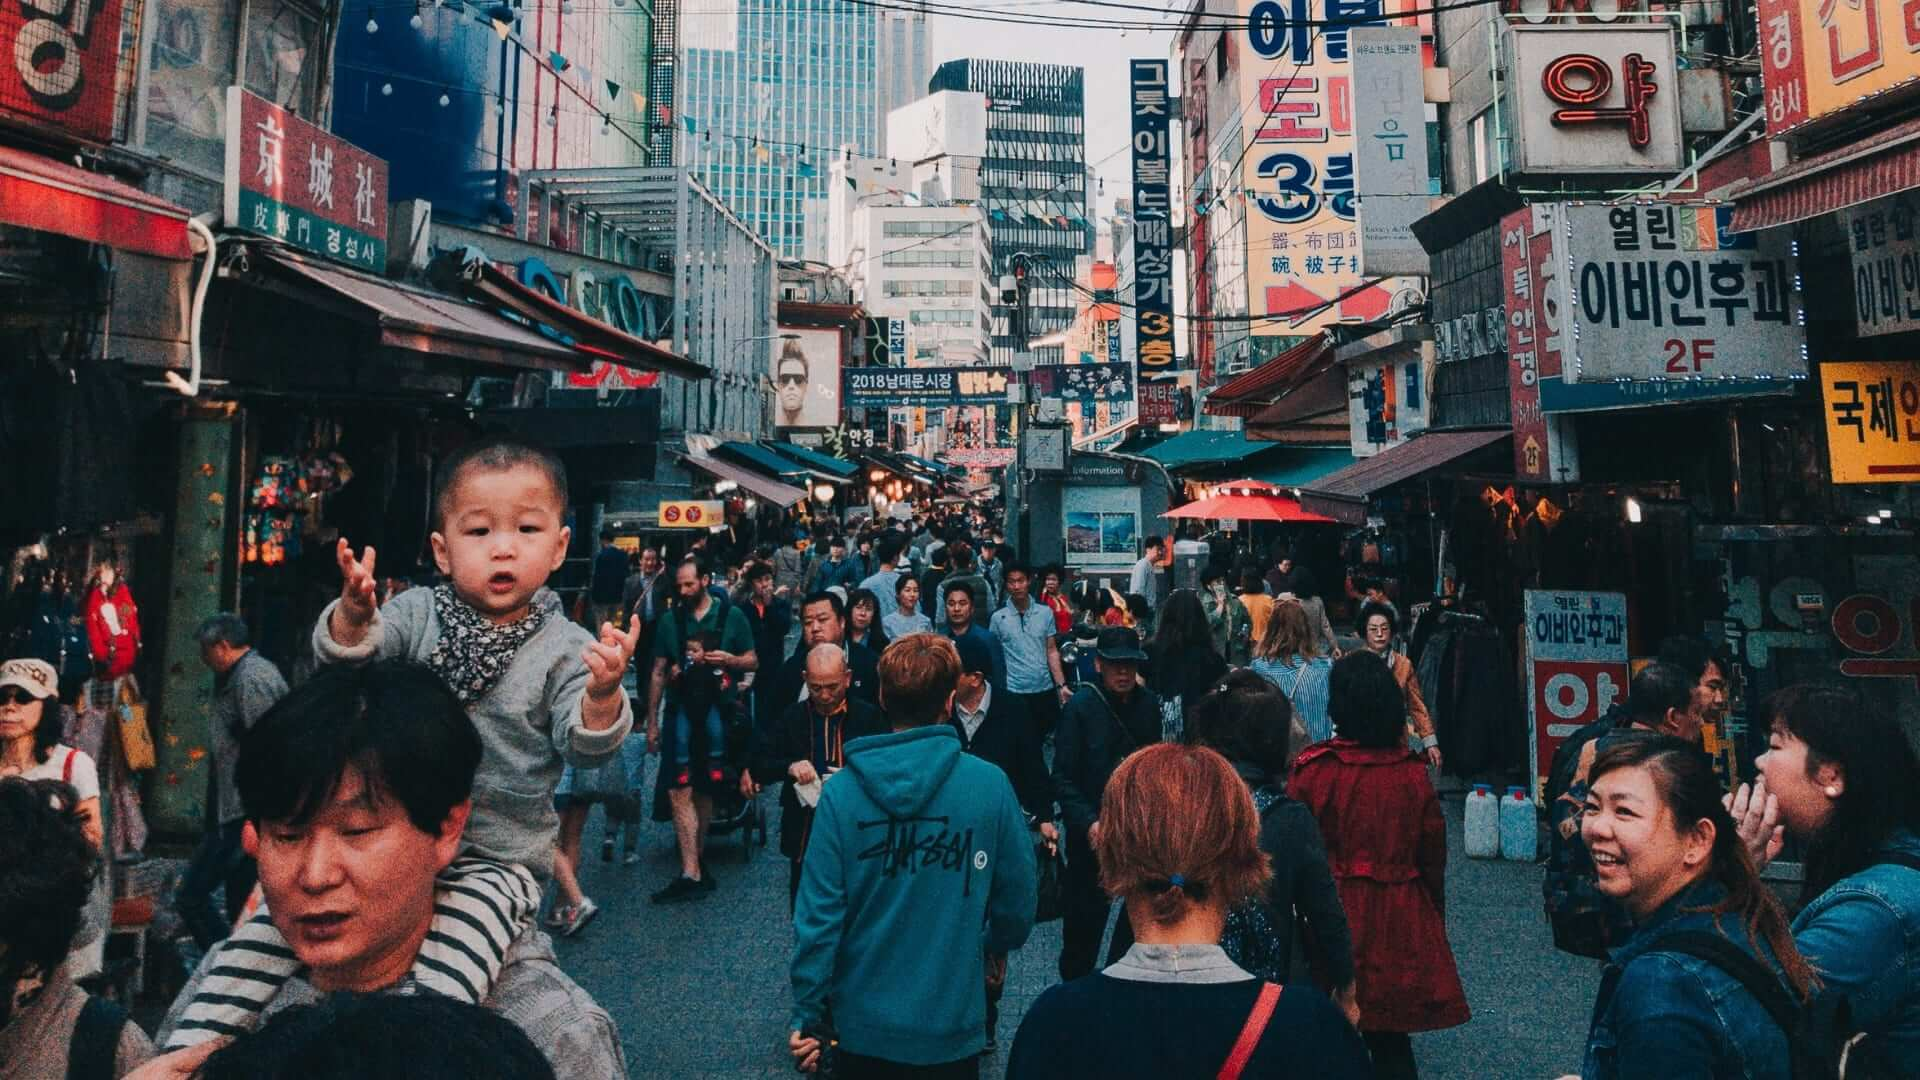 A baby is sitting on someone's shoulder while they are walking through a crowded street in Korea.